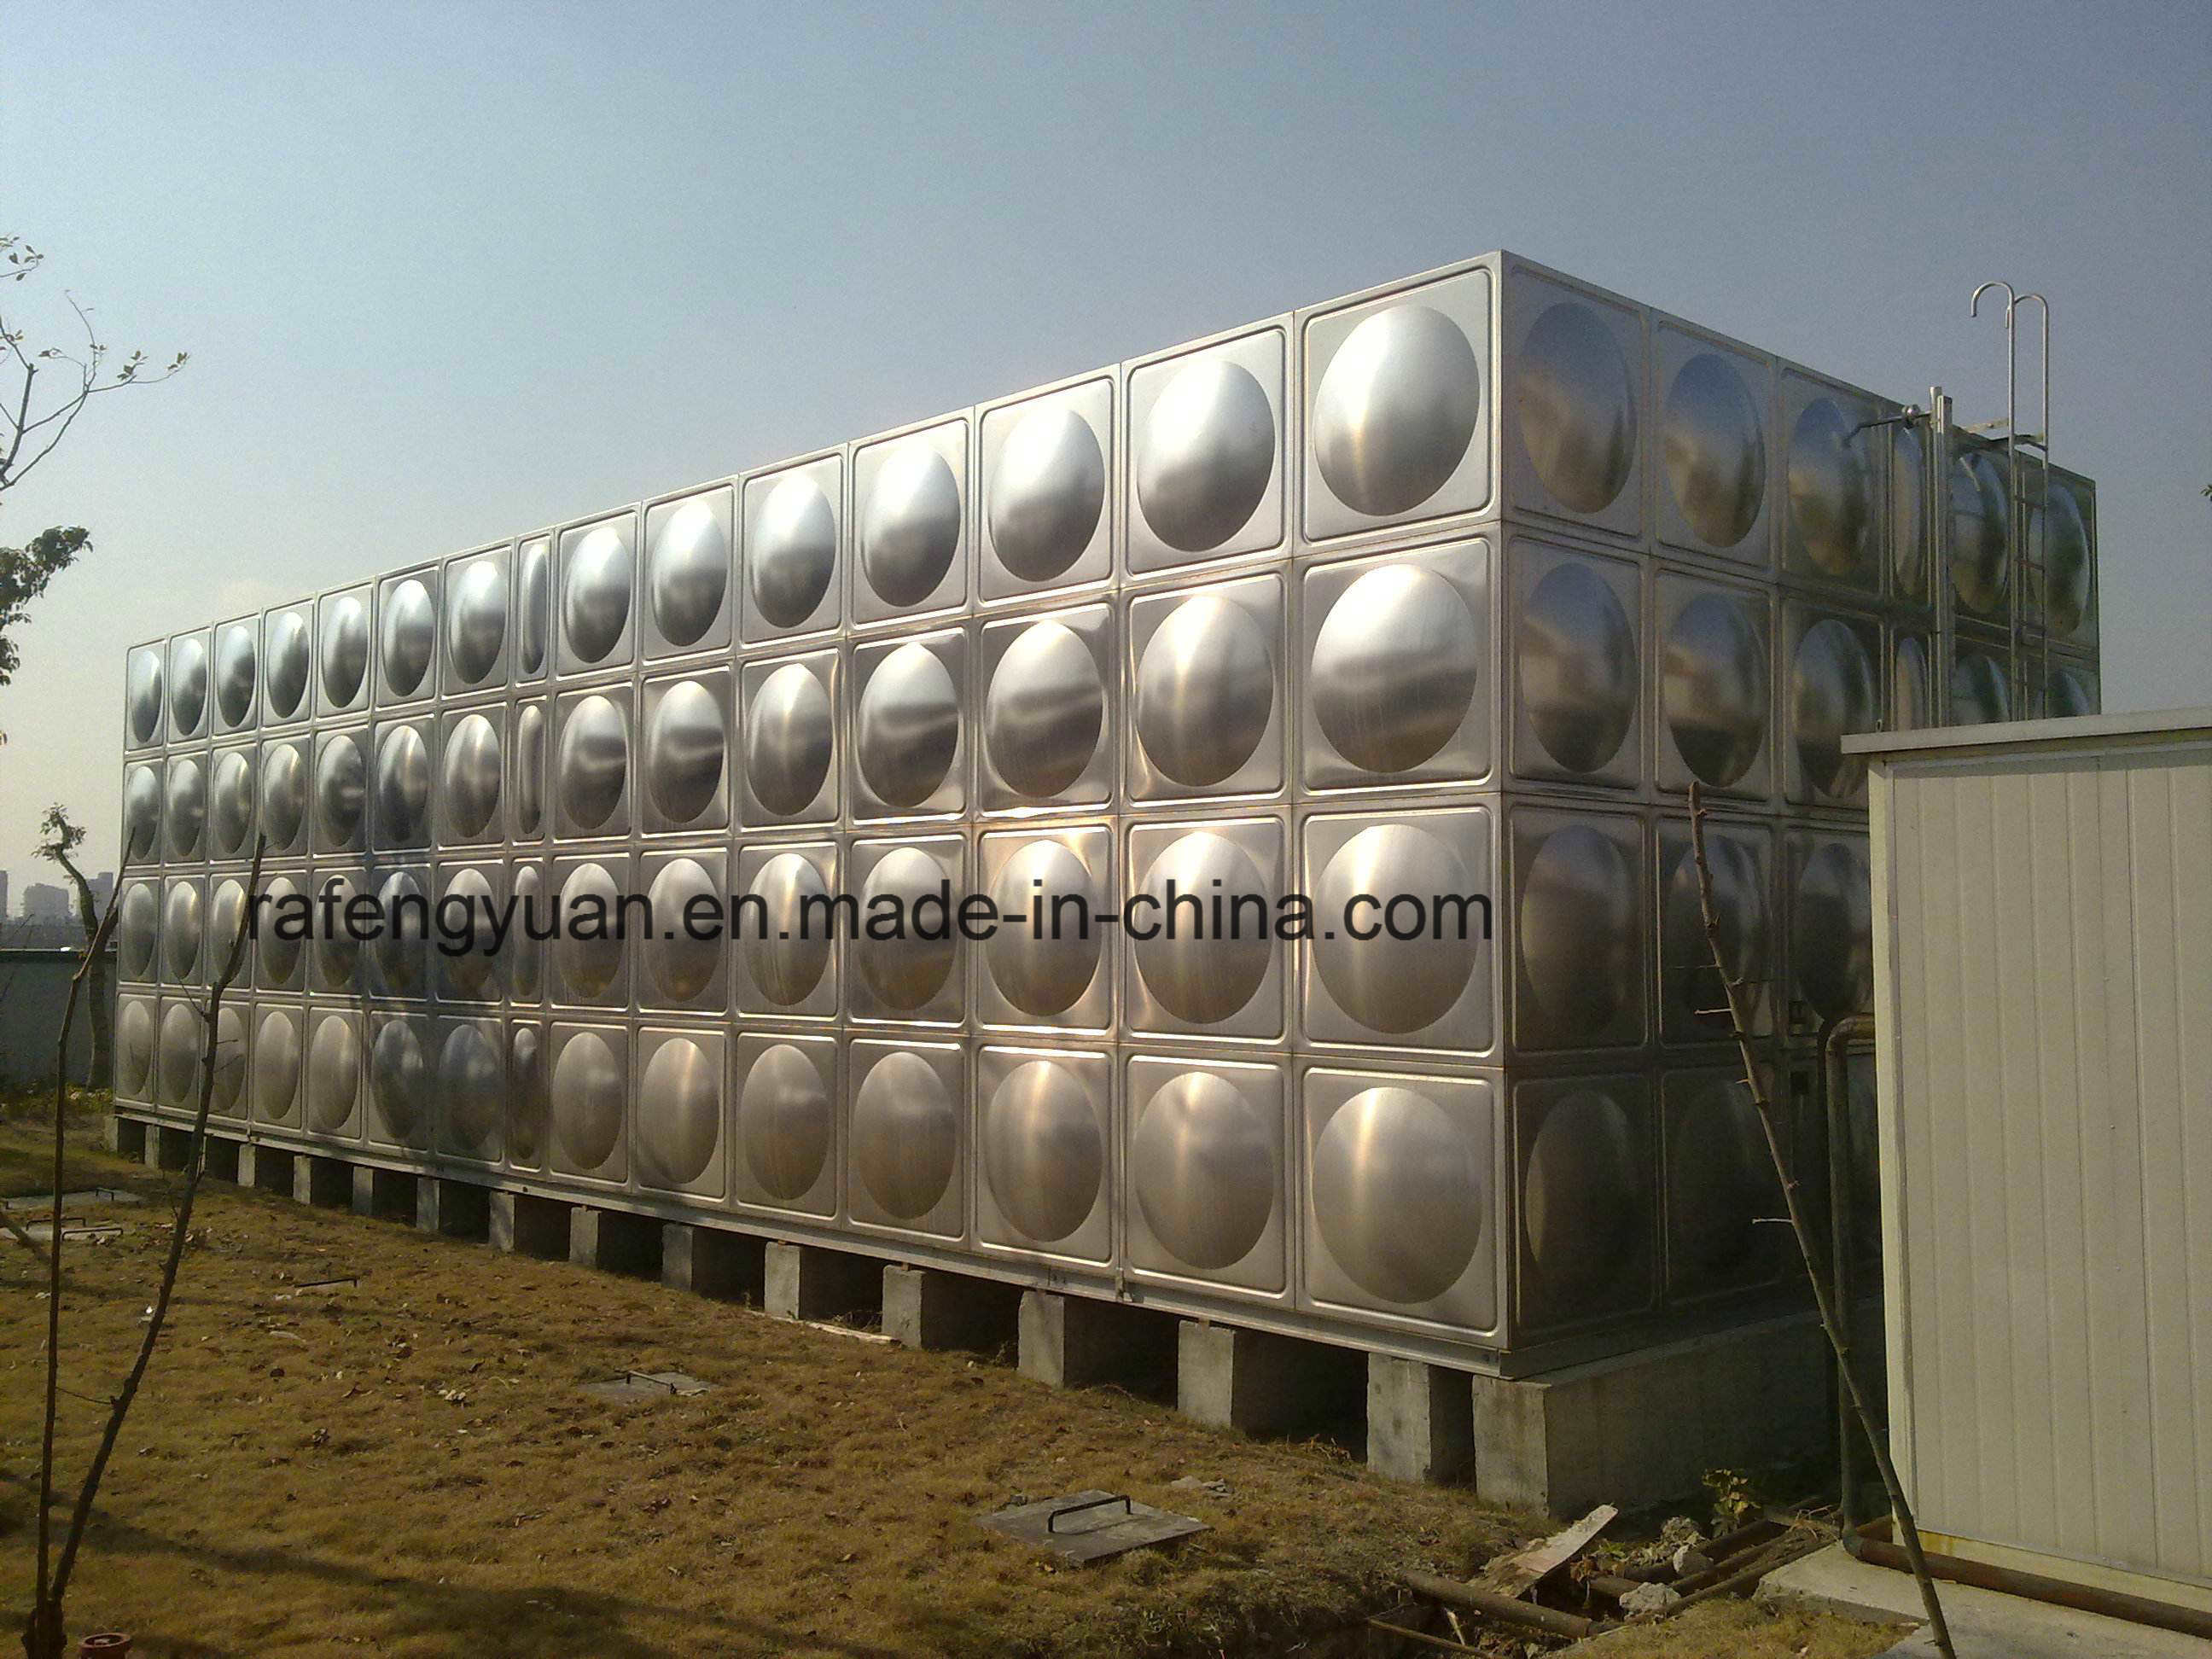 Stainless Steel Water Tank with High Quality pictures & photos